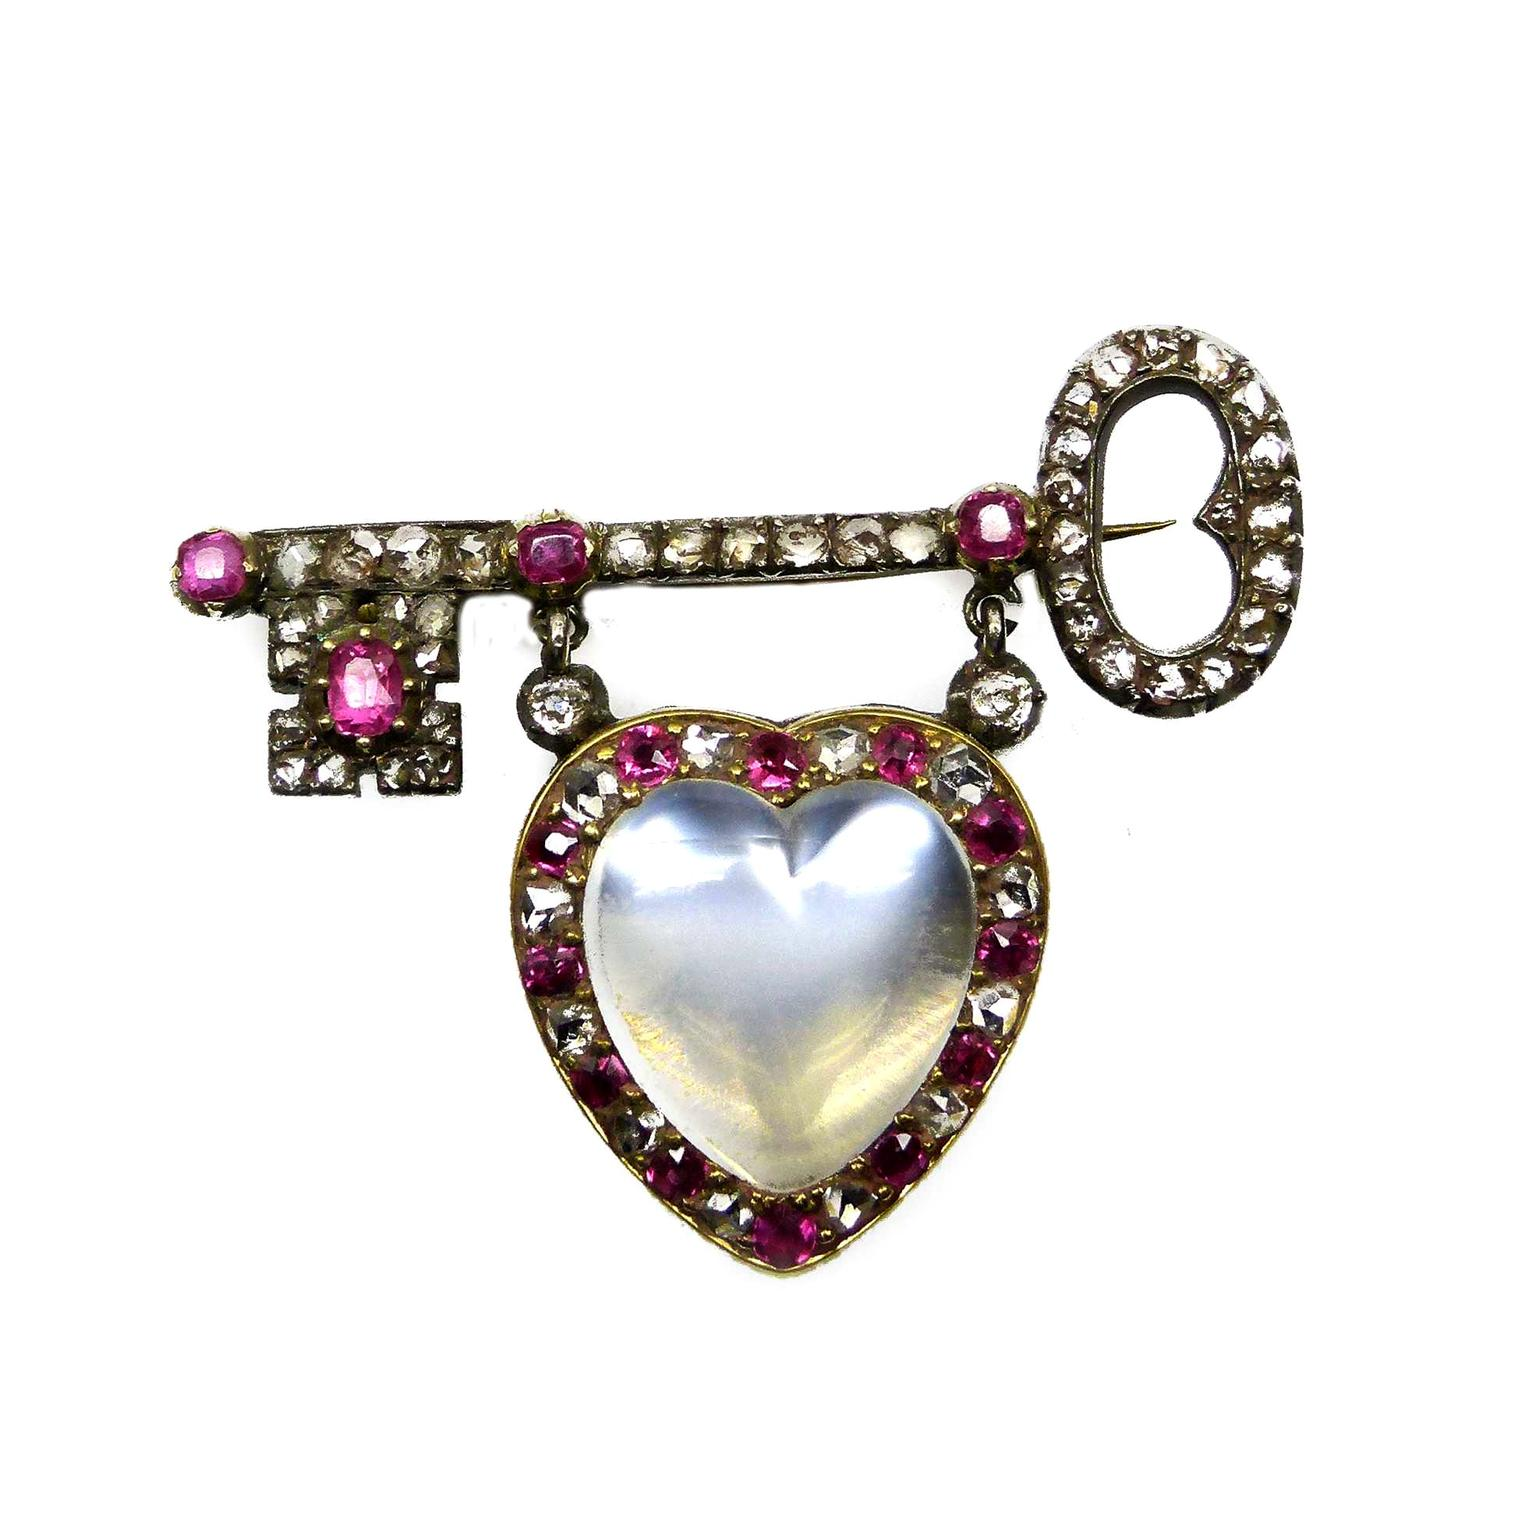 SJ Phillips Victorian key brooch